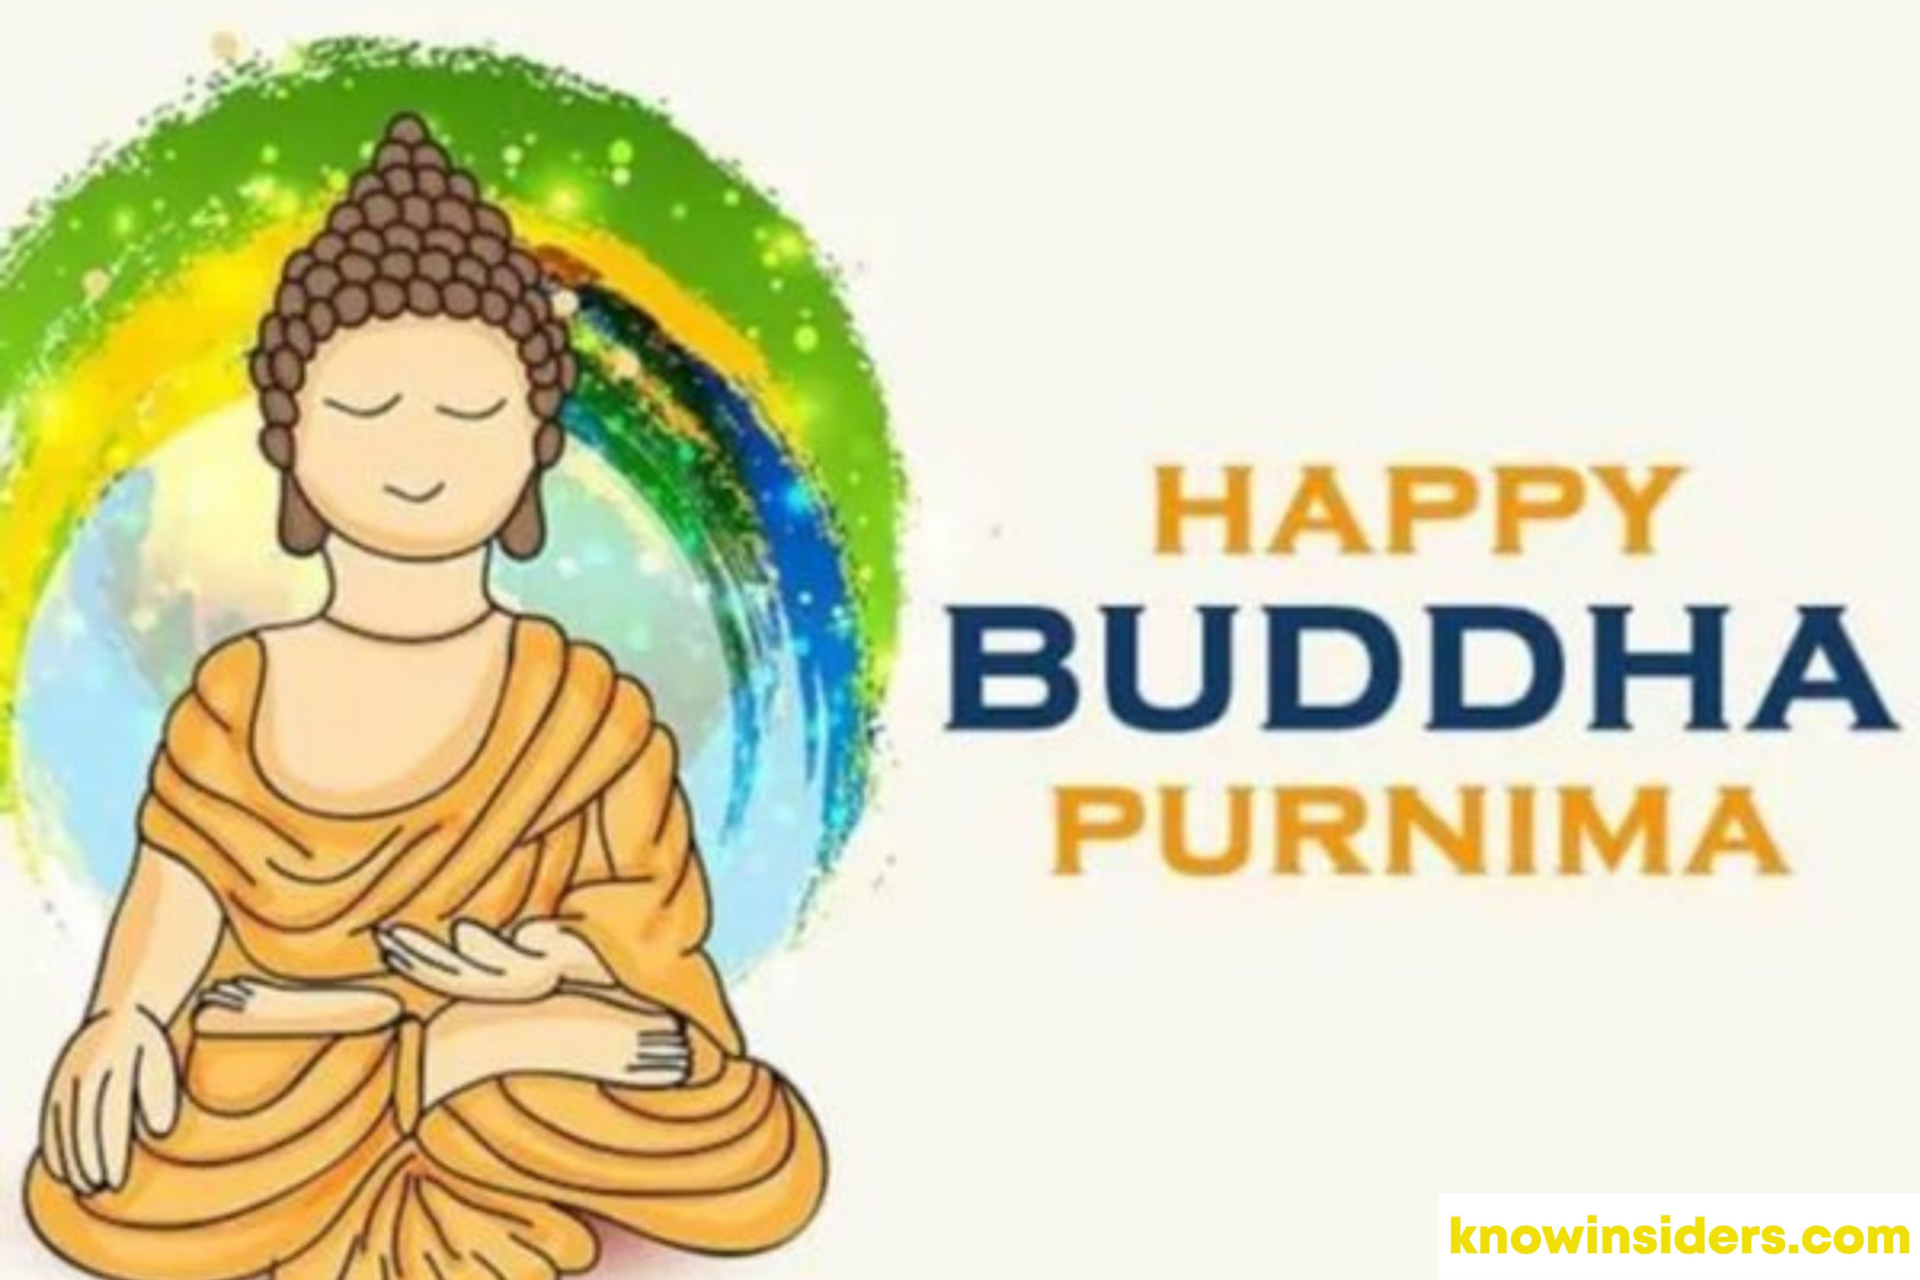 Buddha Purnima (May 7): History, Significance, Wishes and Quotes